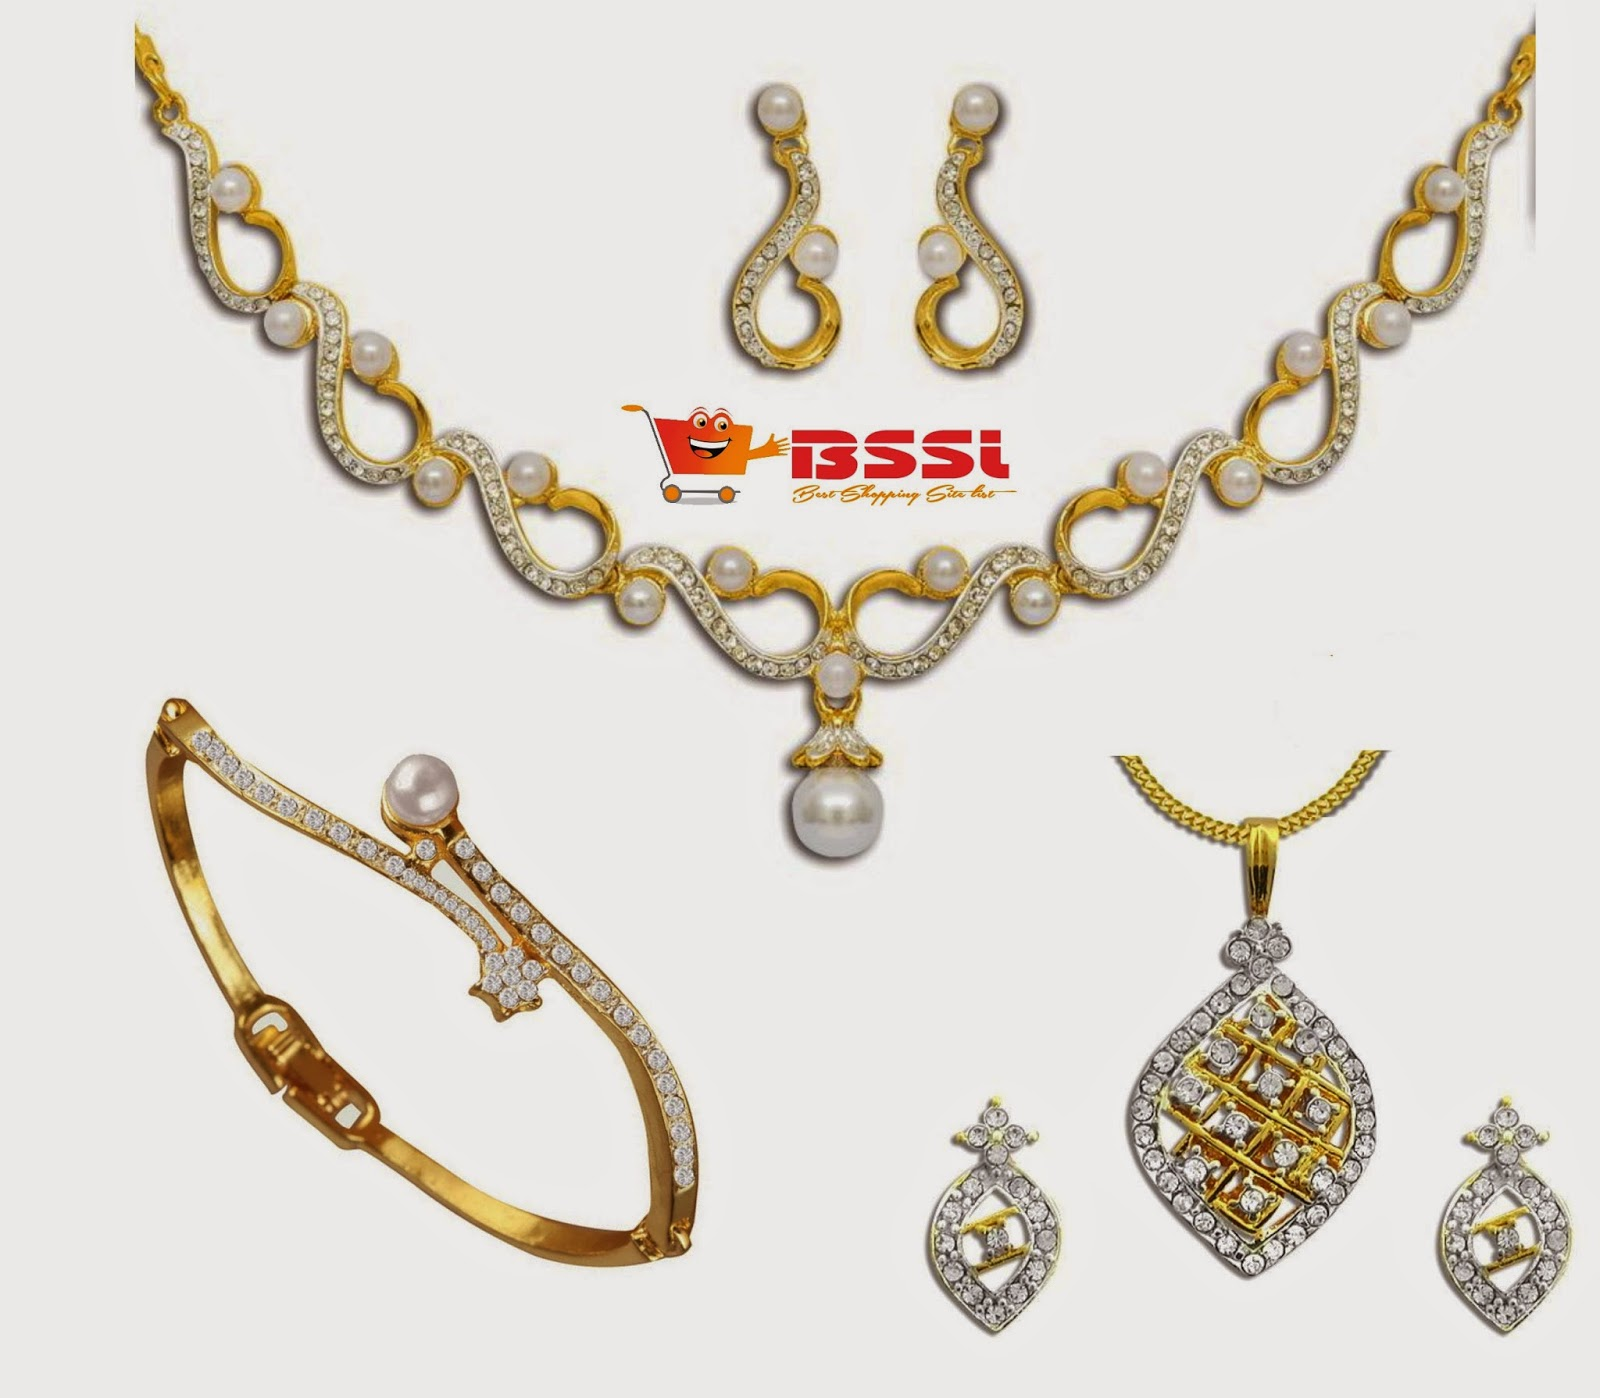 b shop diamond htm jewelry online design shopping websites jewellery template jewels website templates custom osc store